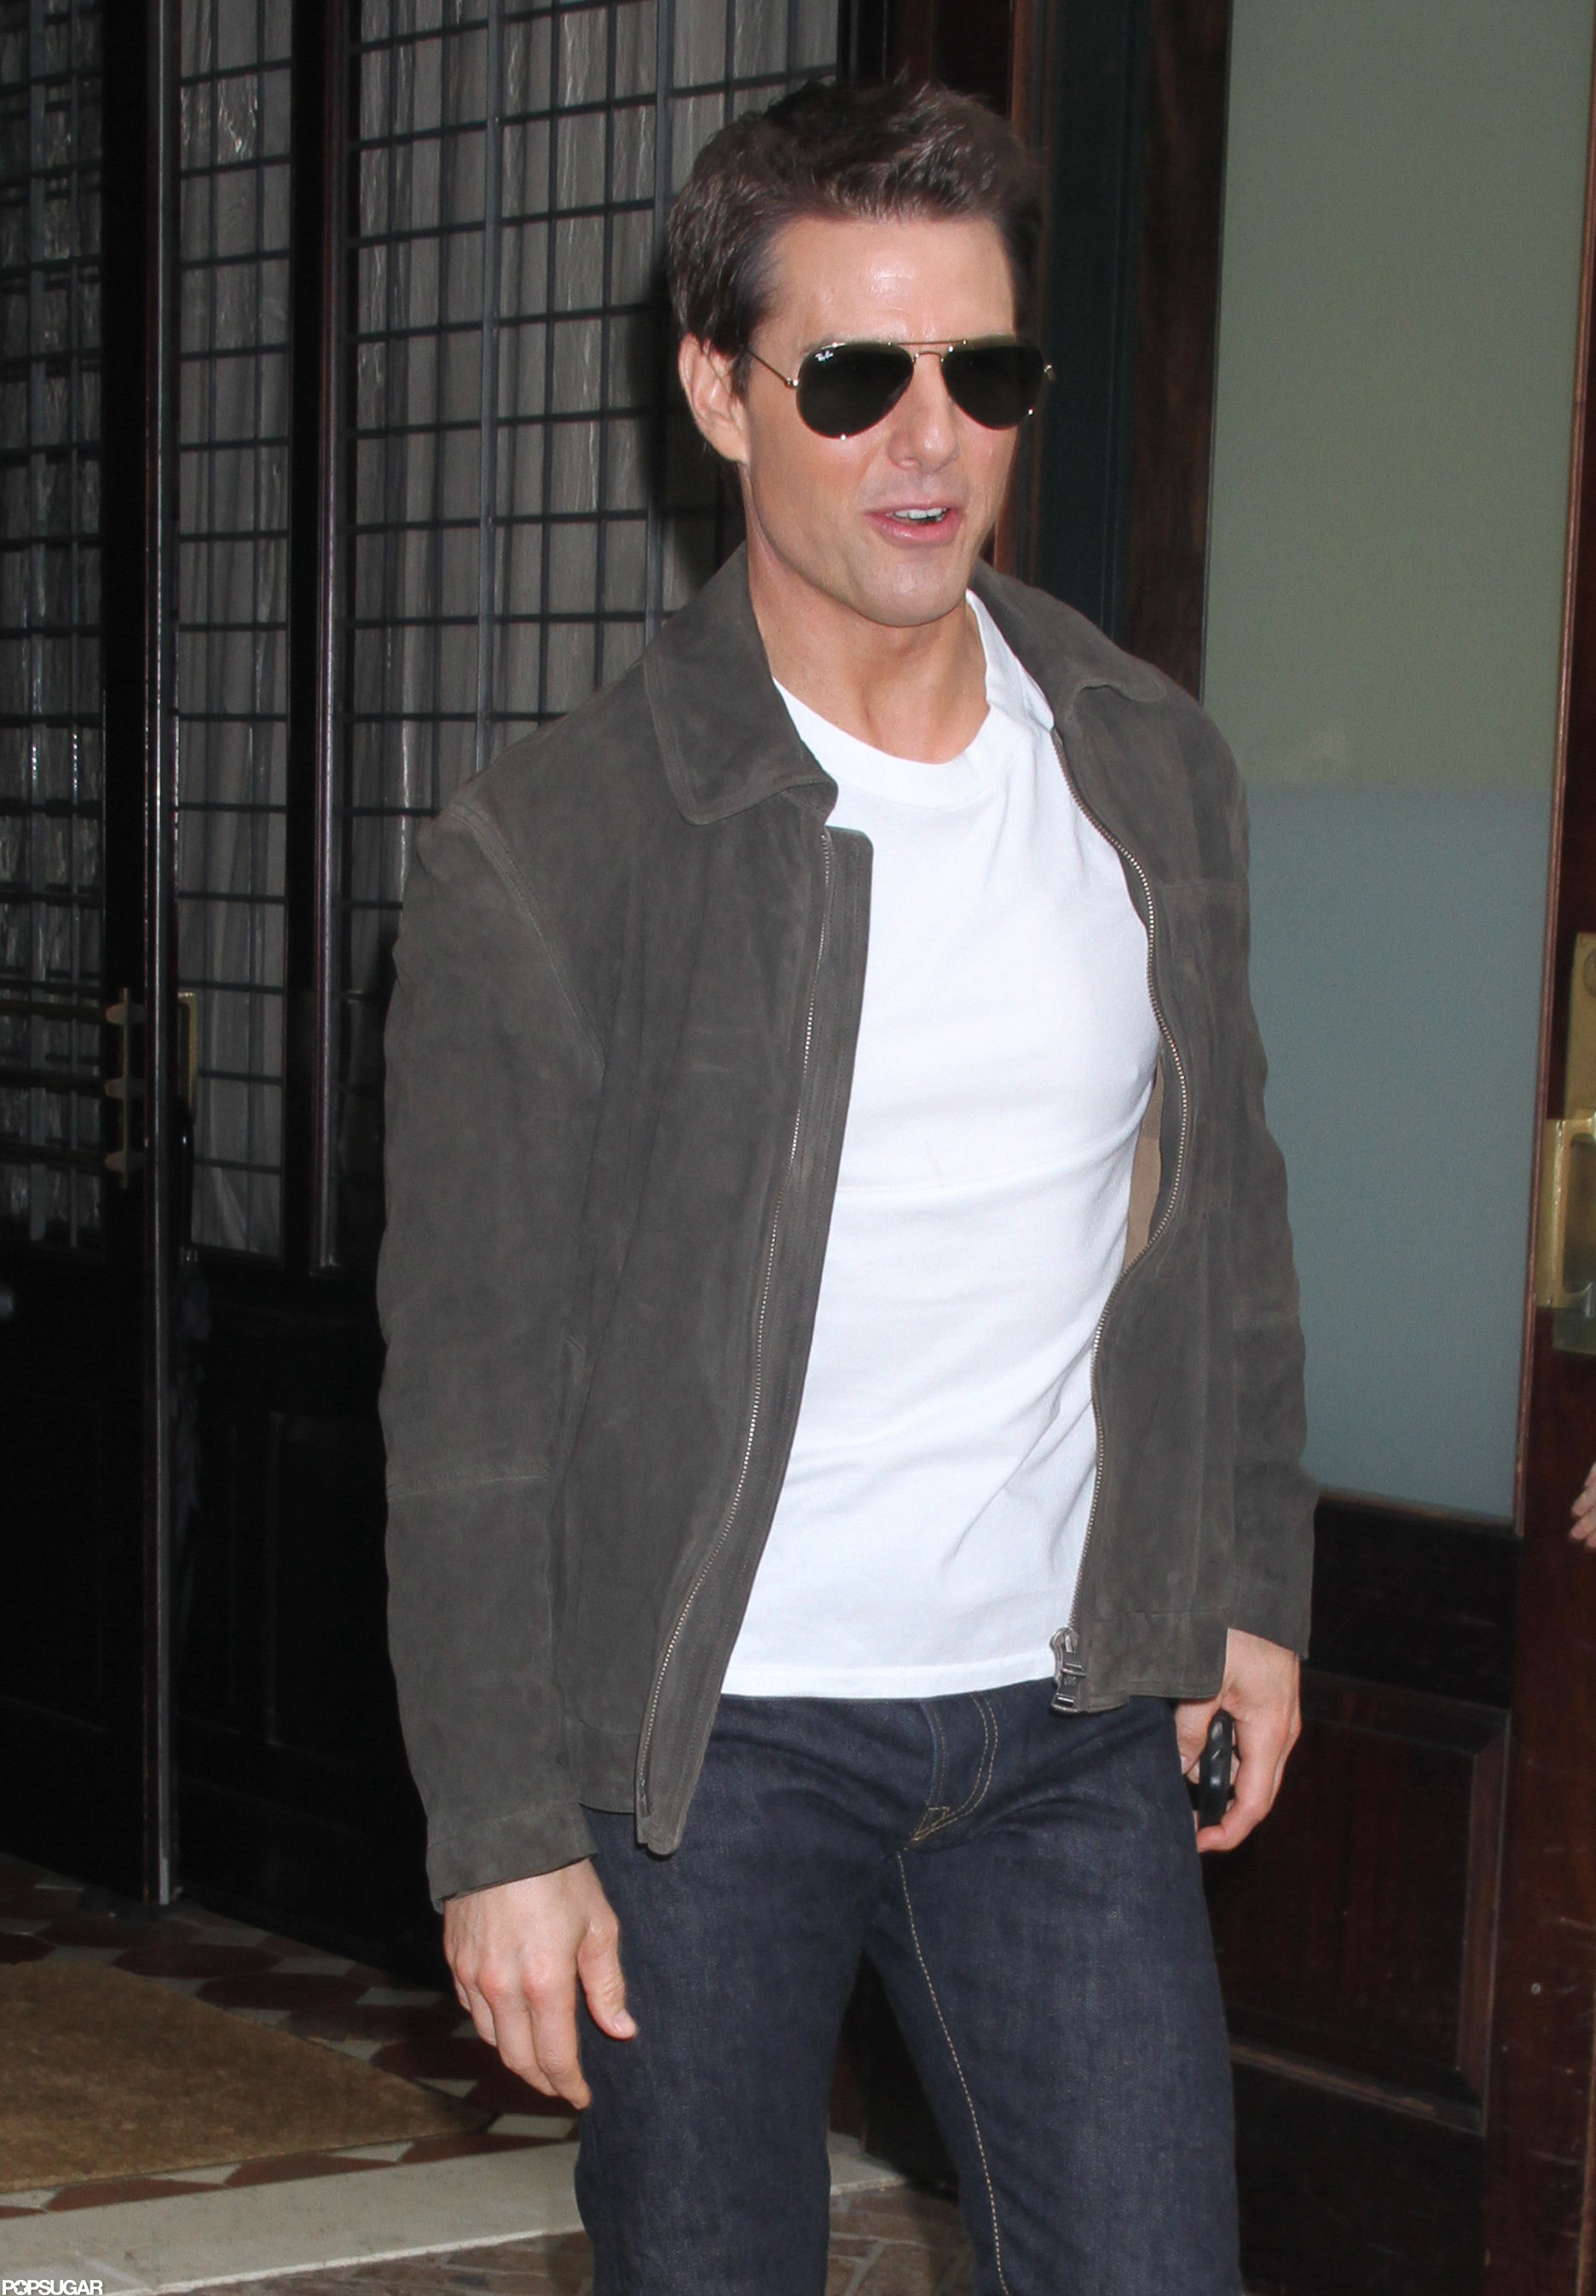 Tom Cruise headed for the car in NYC.